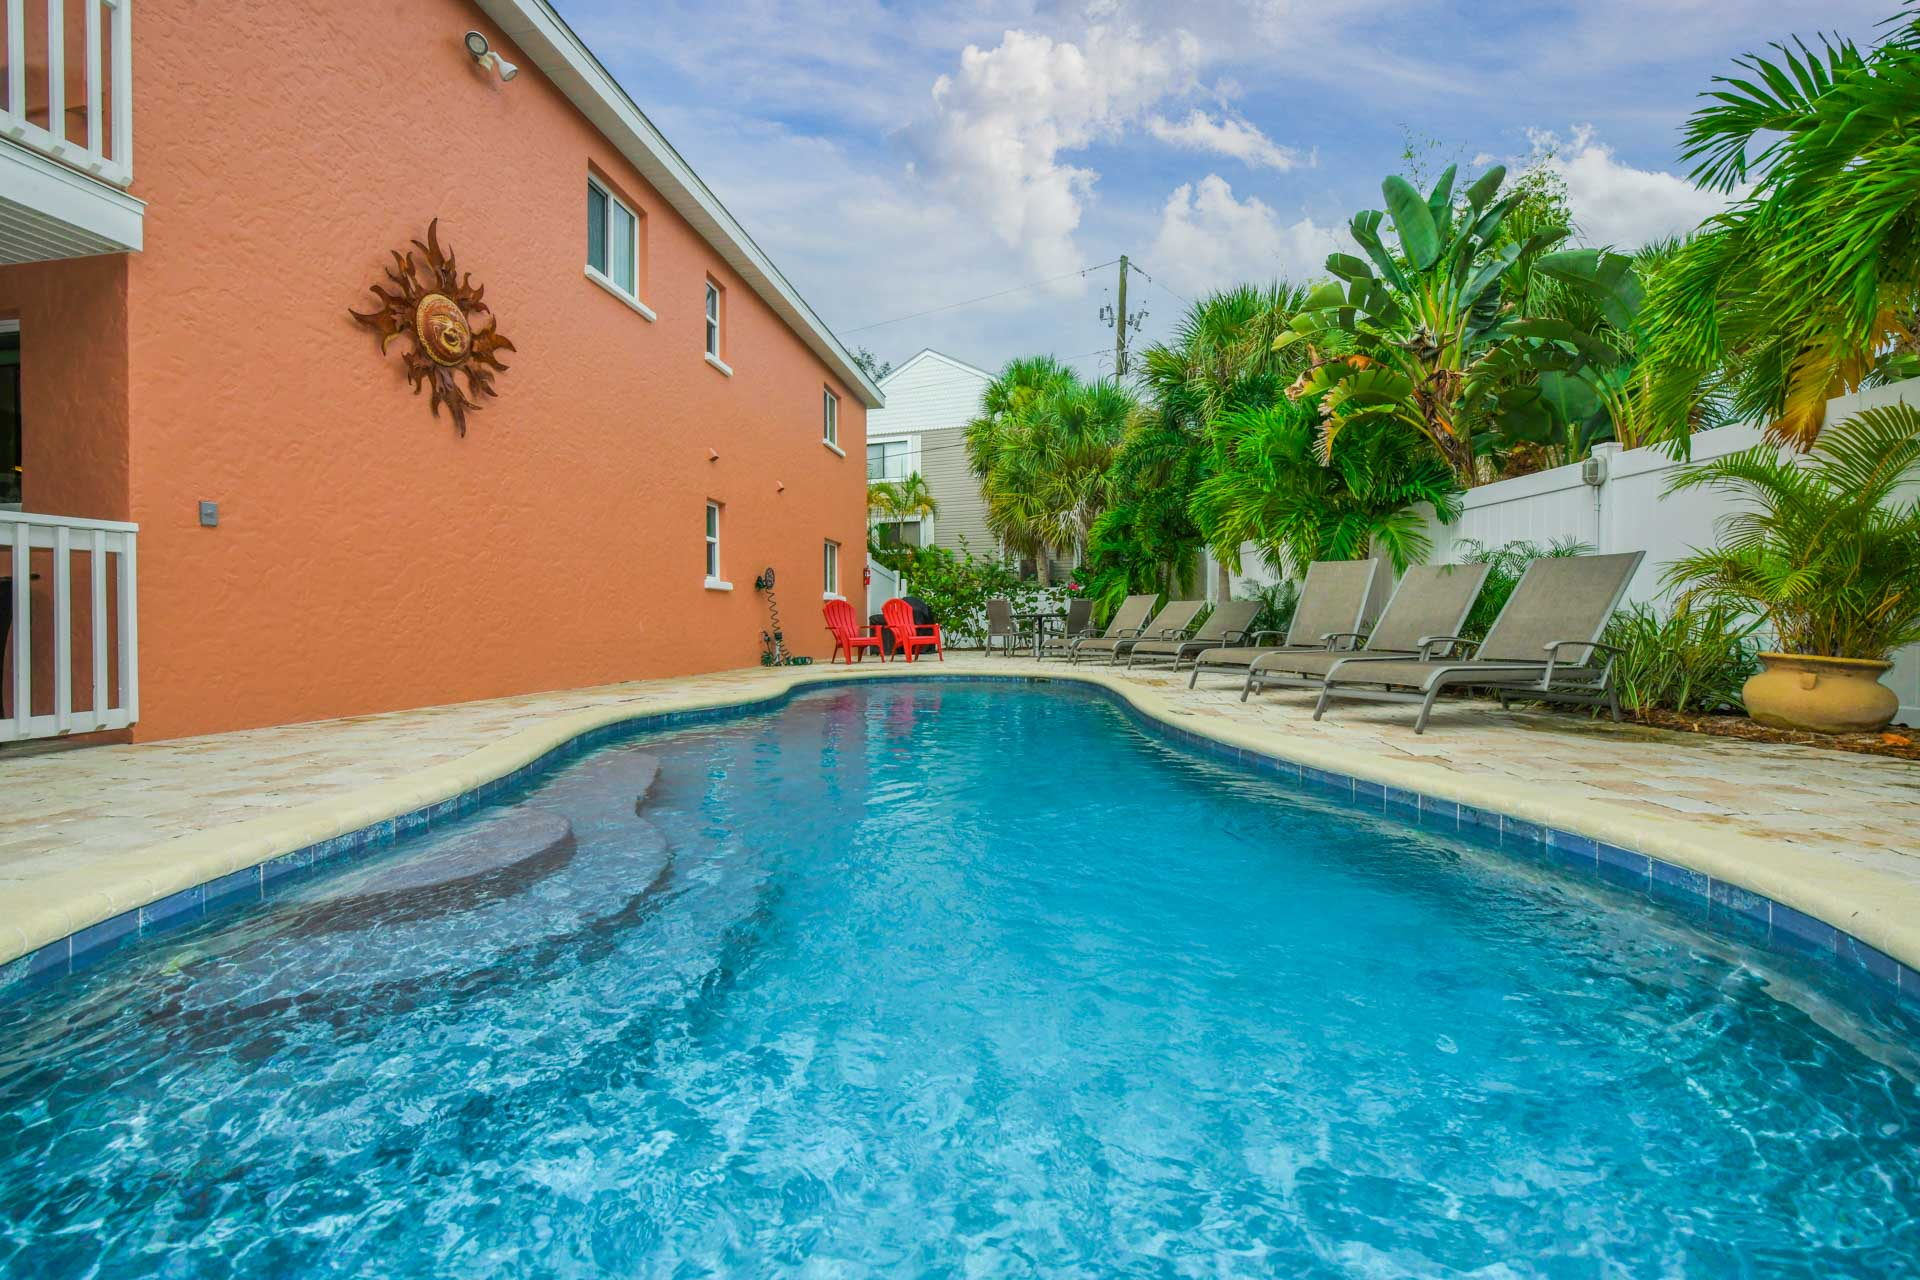 Soak up the sun in the shared heated pool